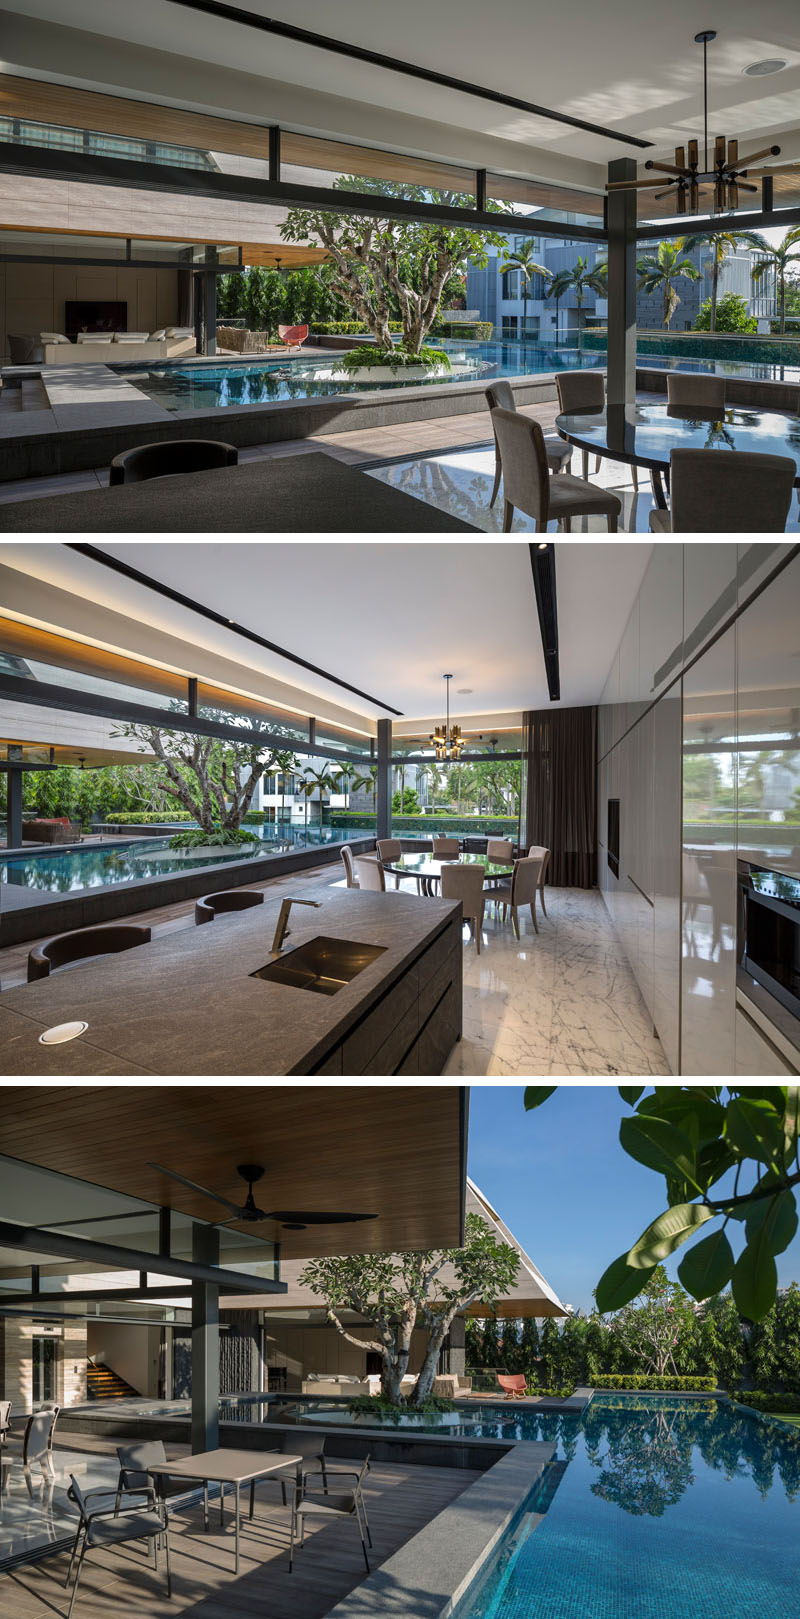 This modern house has retractable walls that open the social areas of the house, like the kitchen, dining and living room, to the wrap around patio and pool. #Kitchen #DiningRoom #SwimmingPool